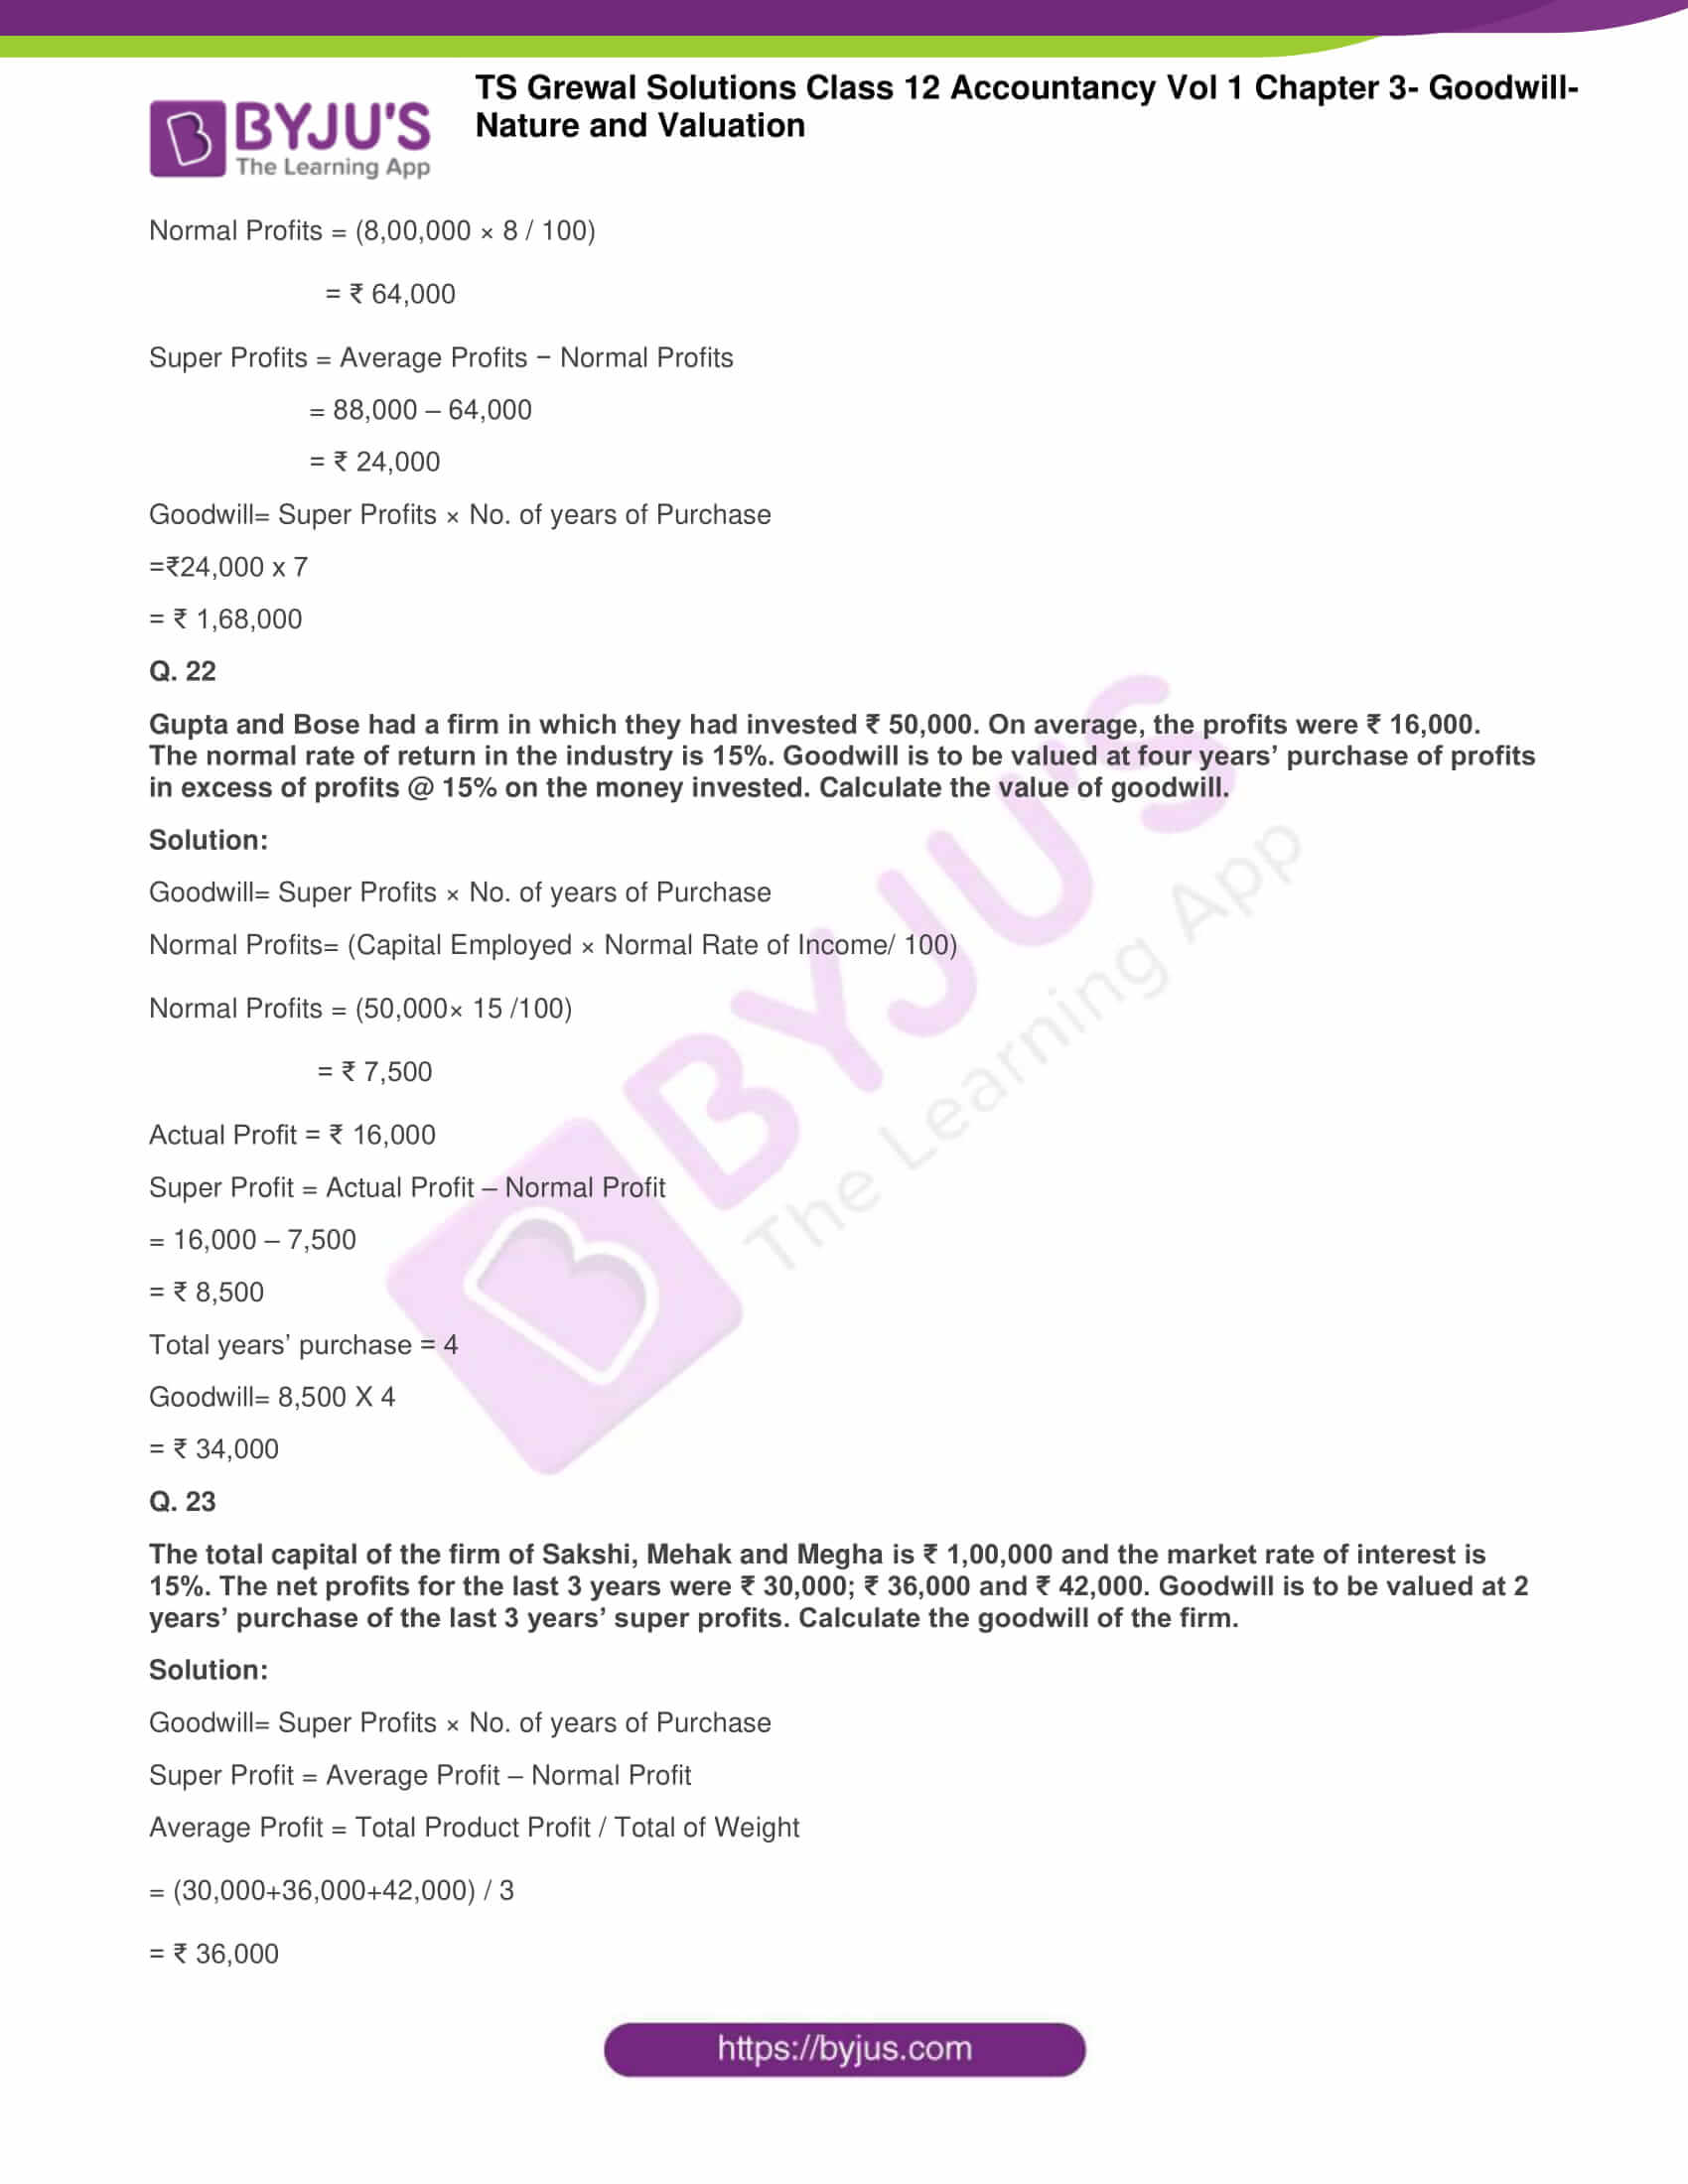 ts grewal solutions for class 12 accountancy vol 1 chapter 321